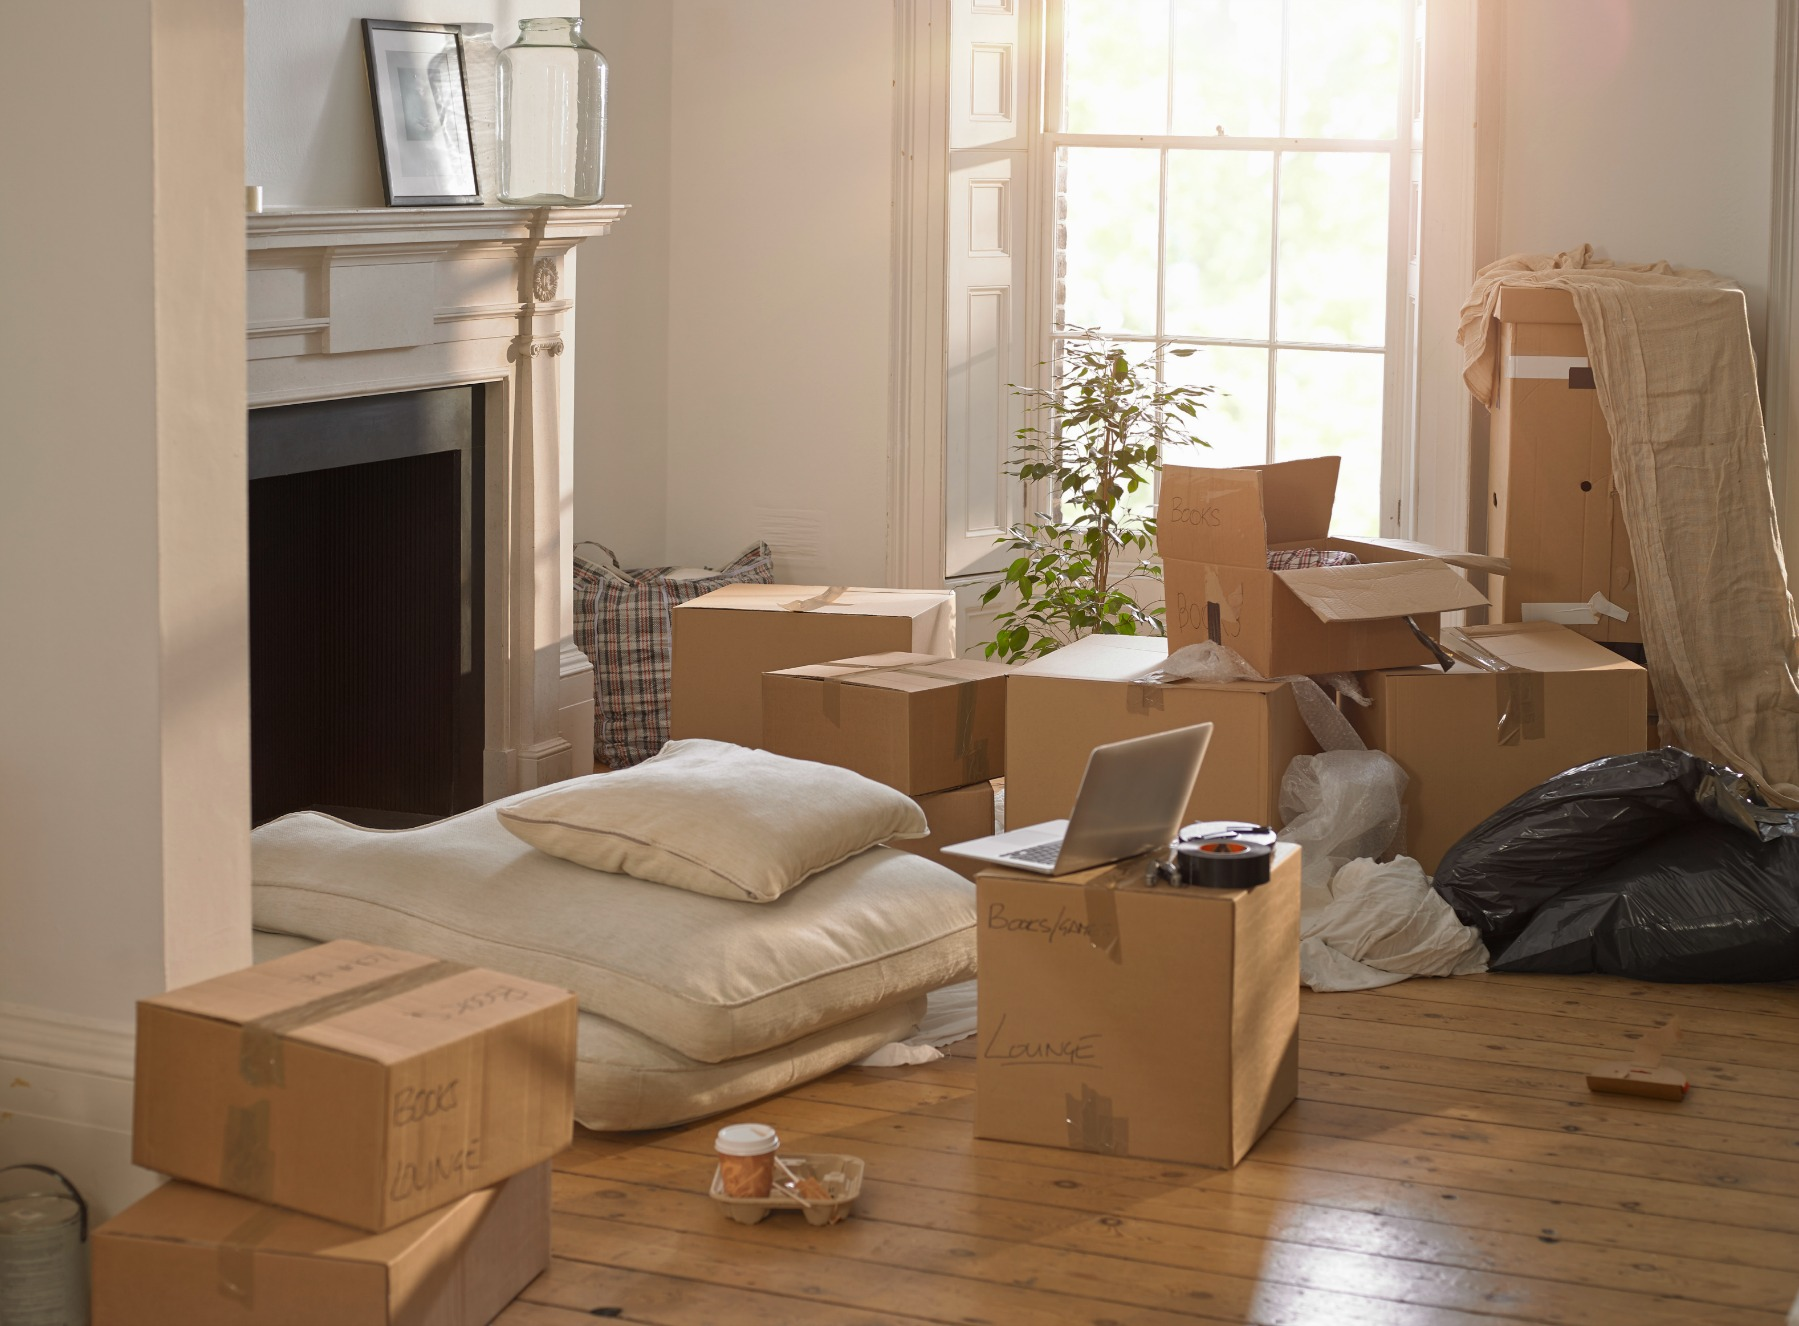 moving house expert tips for packing house simple whether you re moving to a new city out of your parents place or into your first home it s a time to celebrate new beginnings but before you can settle